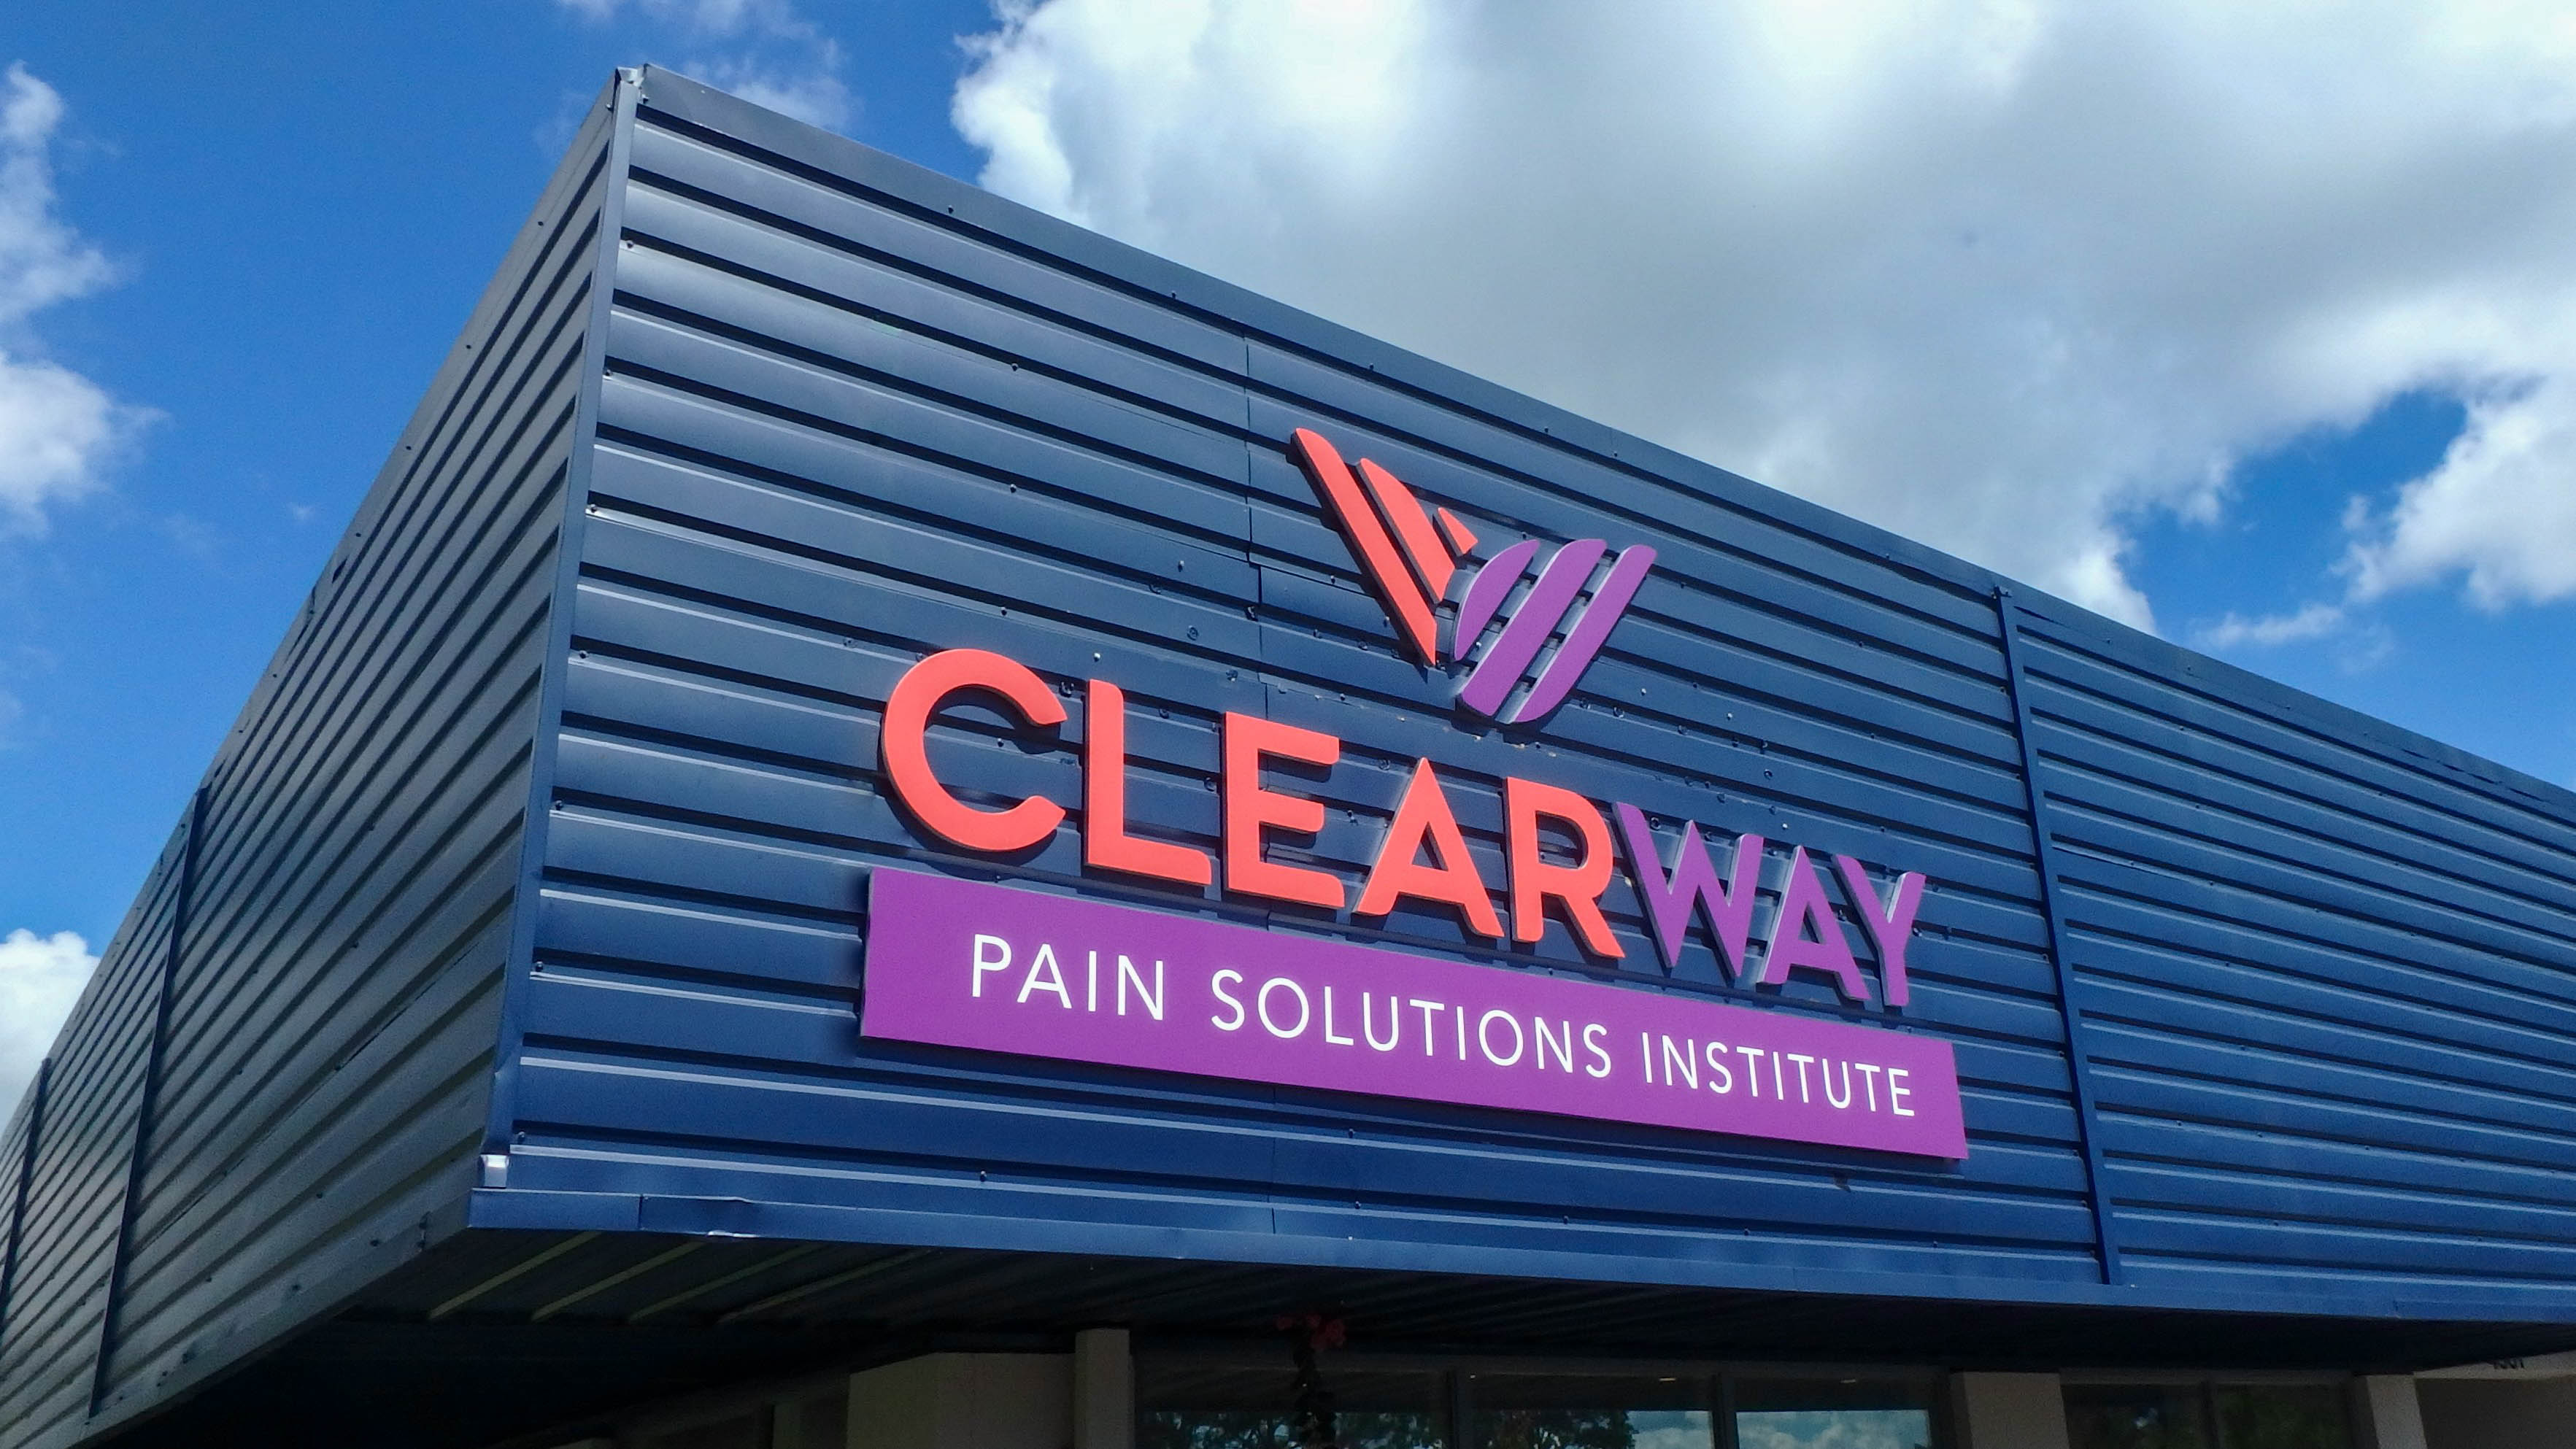 Exterior Dimensional Letters and Logo